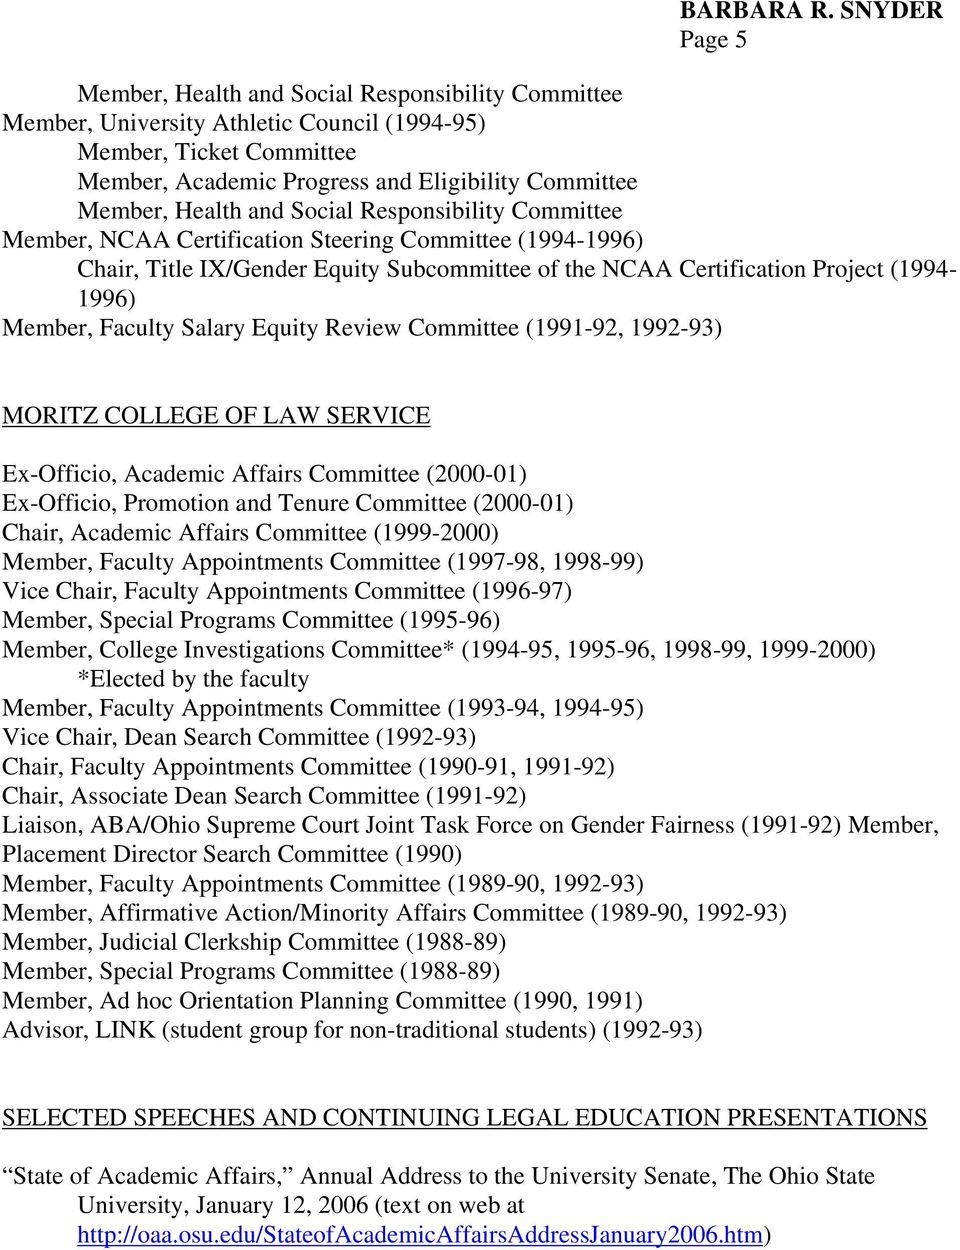 Salary Equity Review Committee (1991-92, 1992-93) MORITZ COLLEGE OF LAW SERVICE Ex-Officio, Academic Affairs Committee (2000-01) Ex-Officio, Promotion and Tenure Committee (2000-01) Chair, Academic